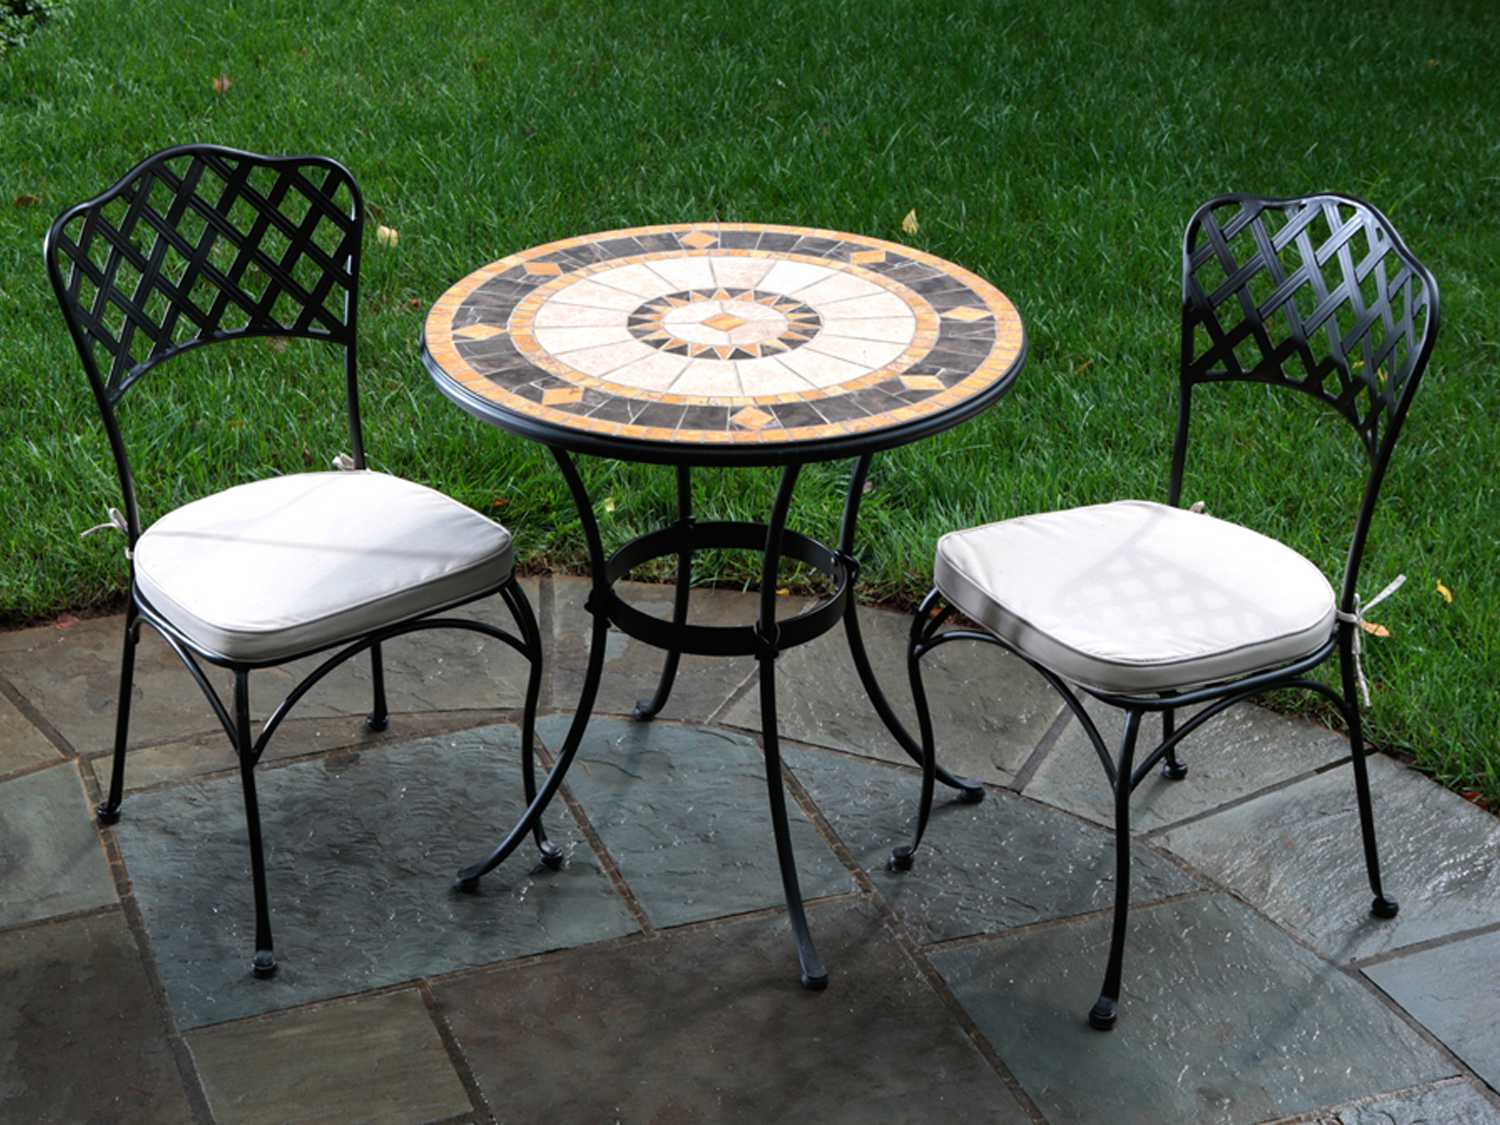 Wrought Iron 3 Piece Outdoor Setting Alfresco Home Compass Wrought Iron Mosaic 3 Piece Bistro